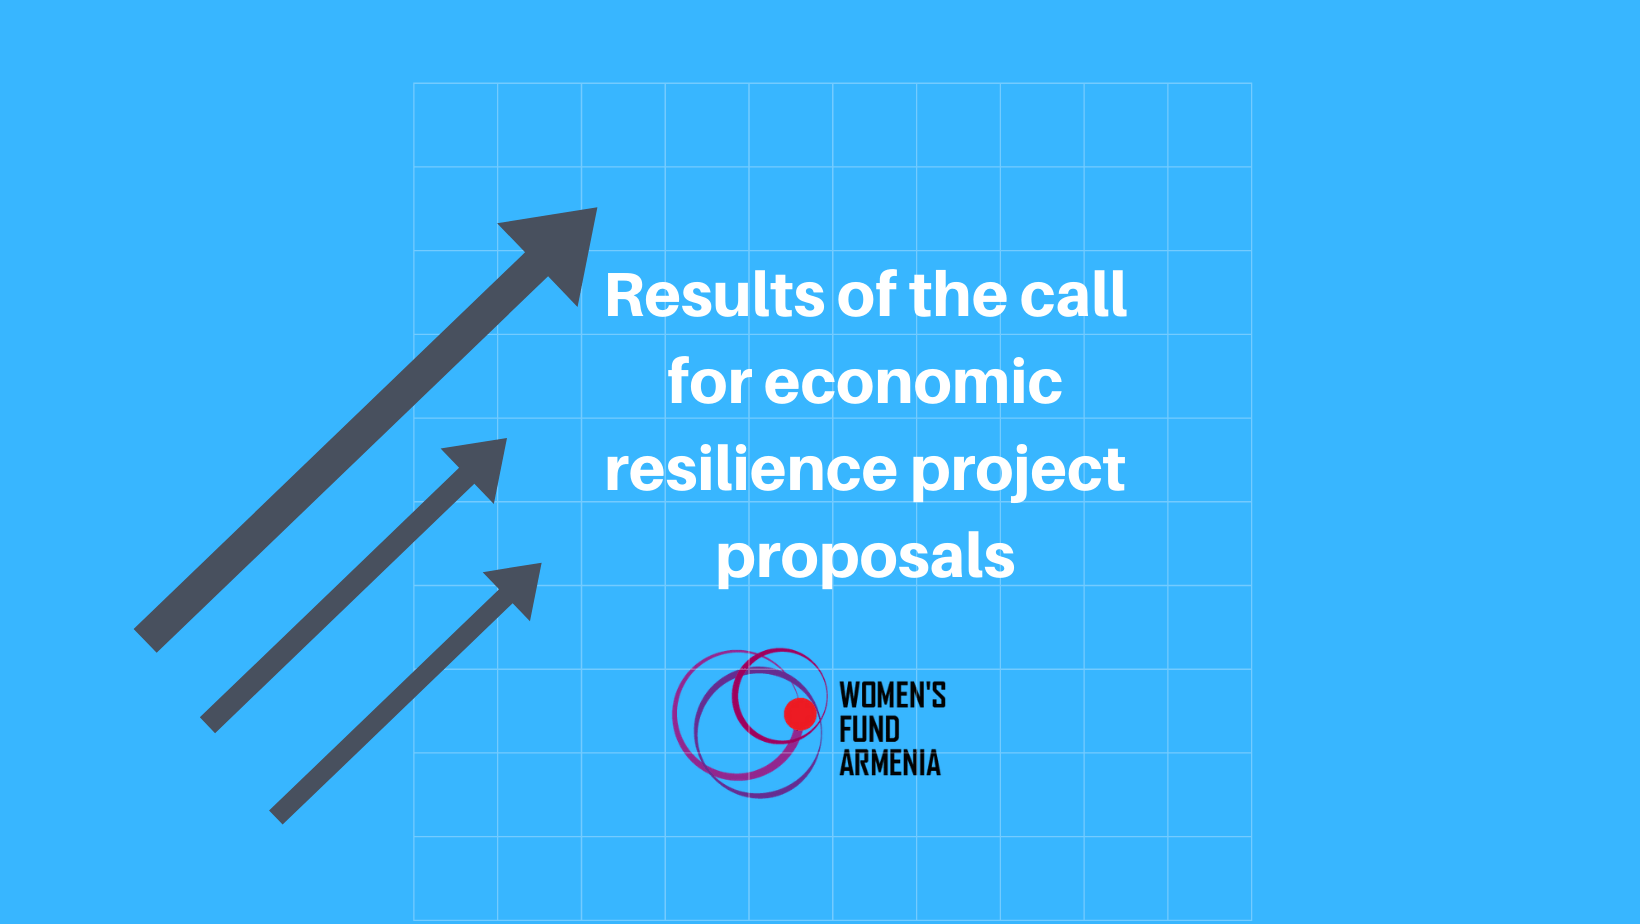 Results of the call for economic resilience project proposals